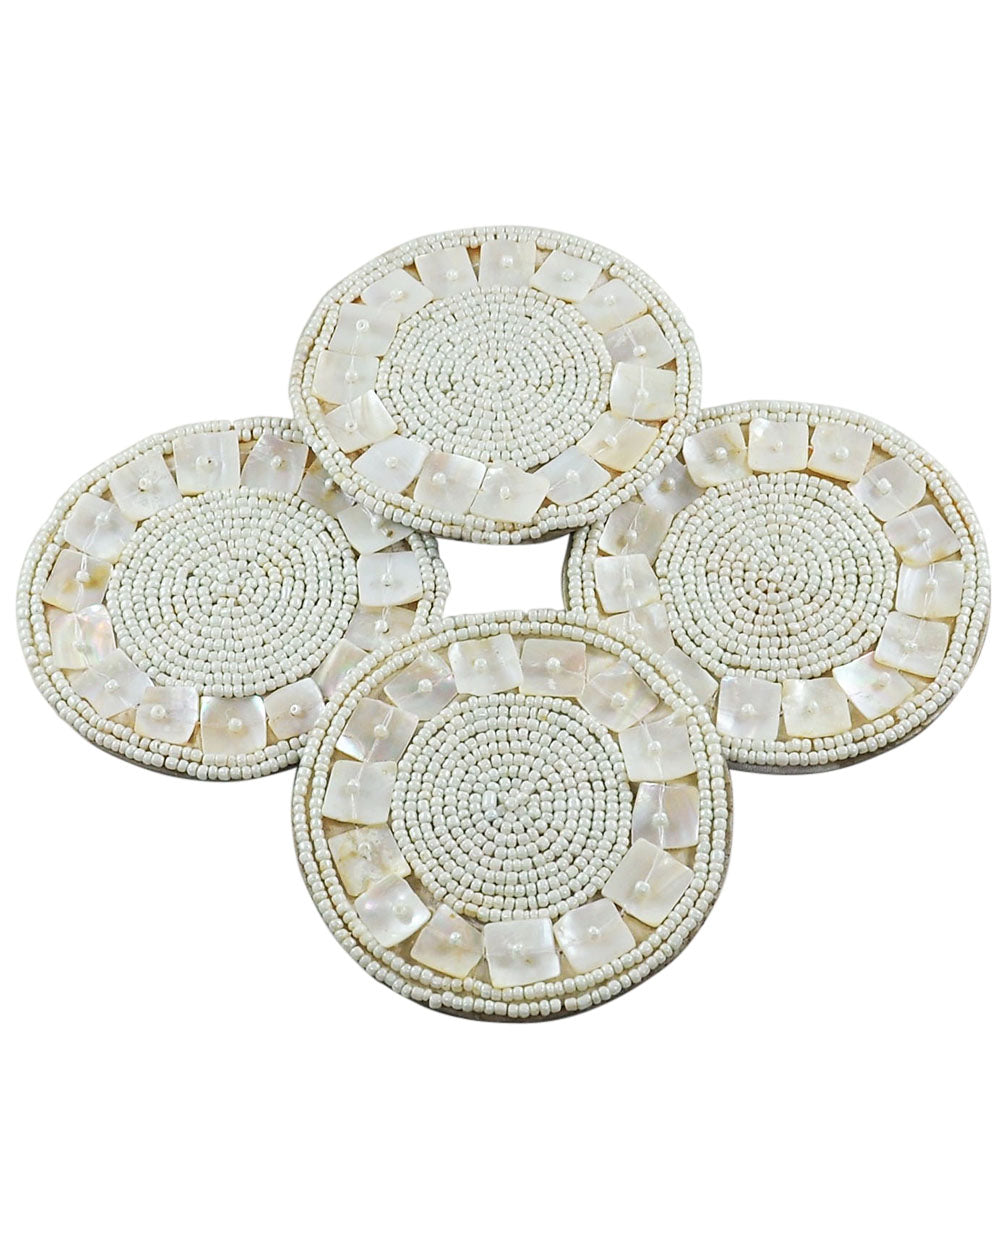 White MOP Beaded Coaster Set of 4